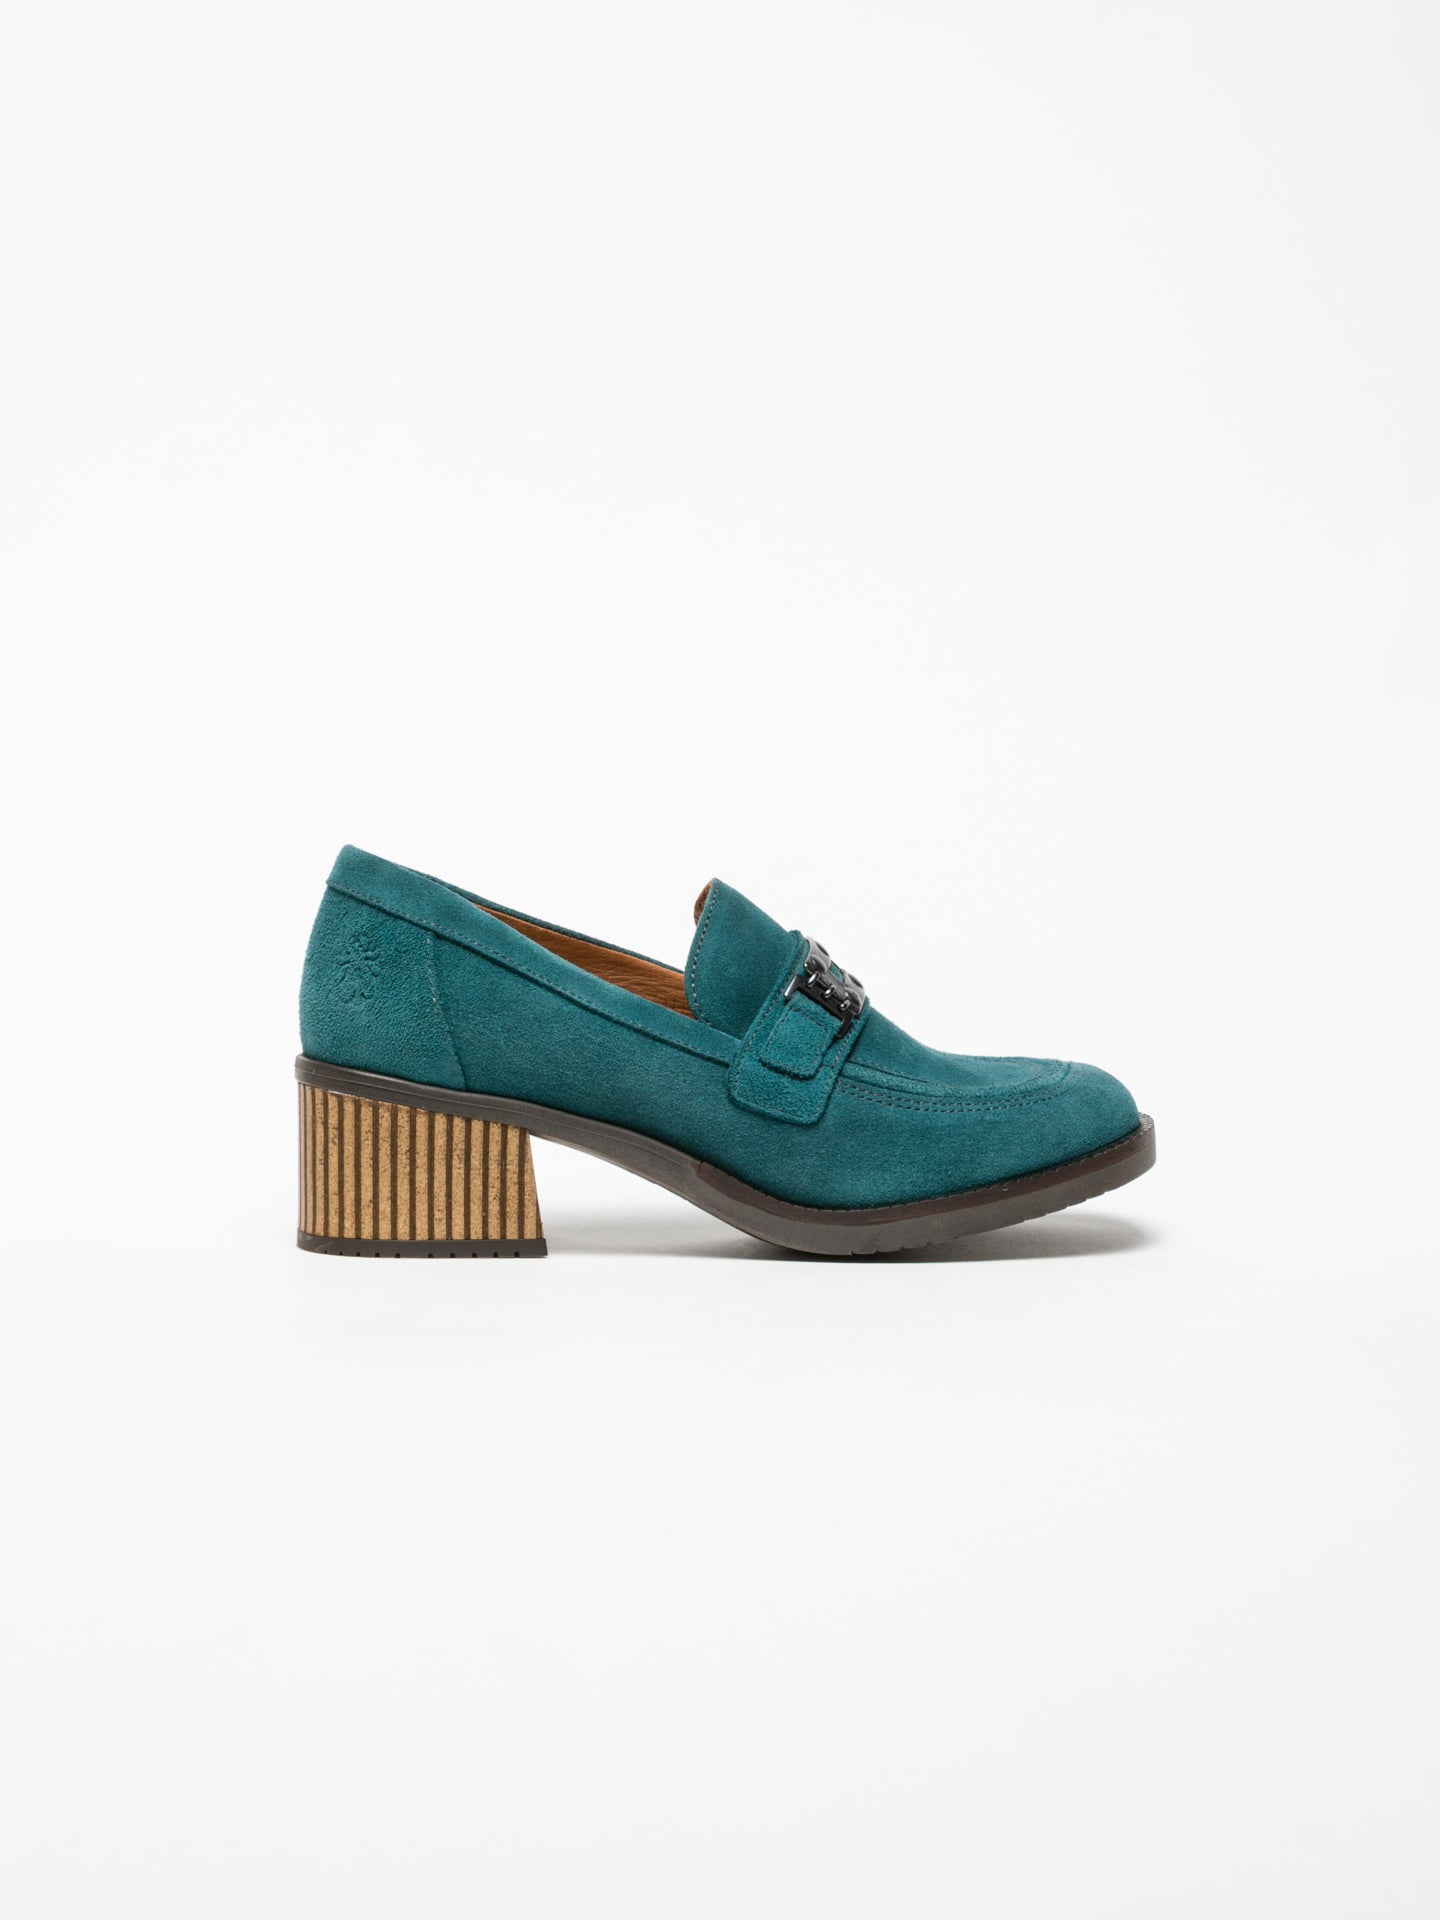 Fly London Blue Block Heel Shoes